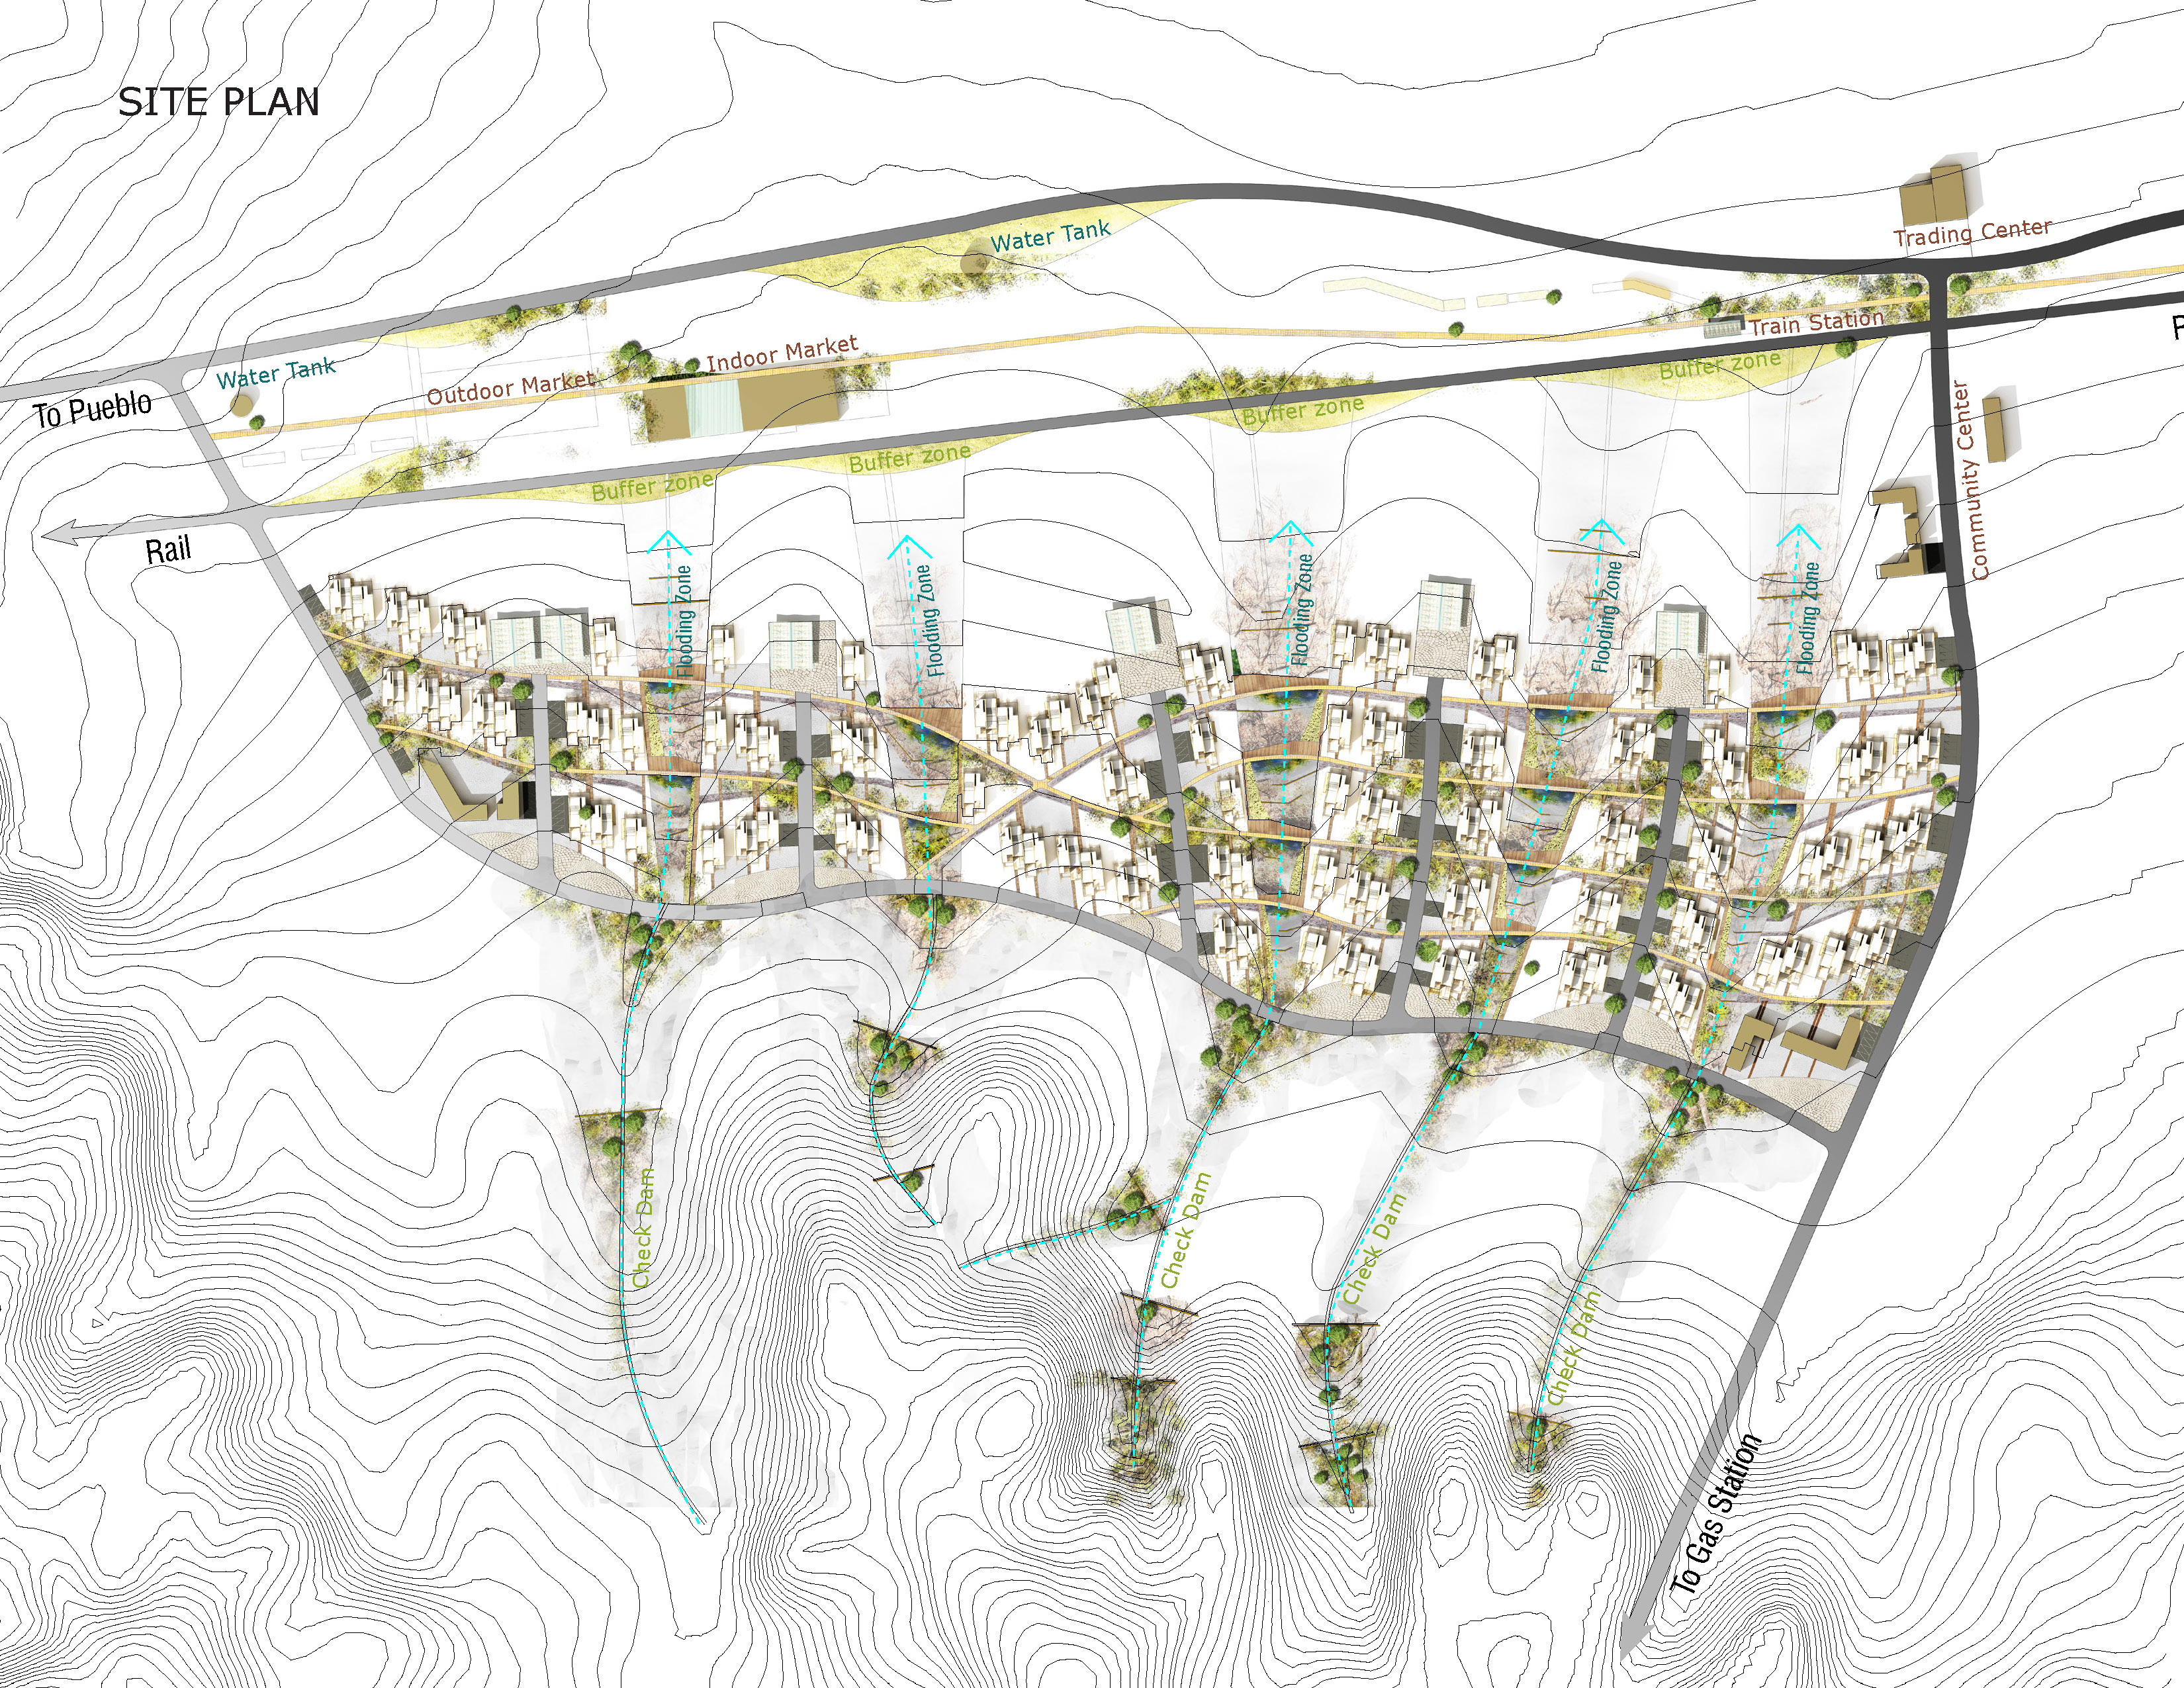 Asla 2013 Student Awards Paths Of Life Rethink The